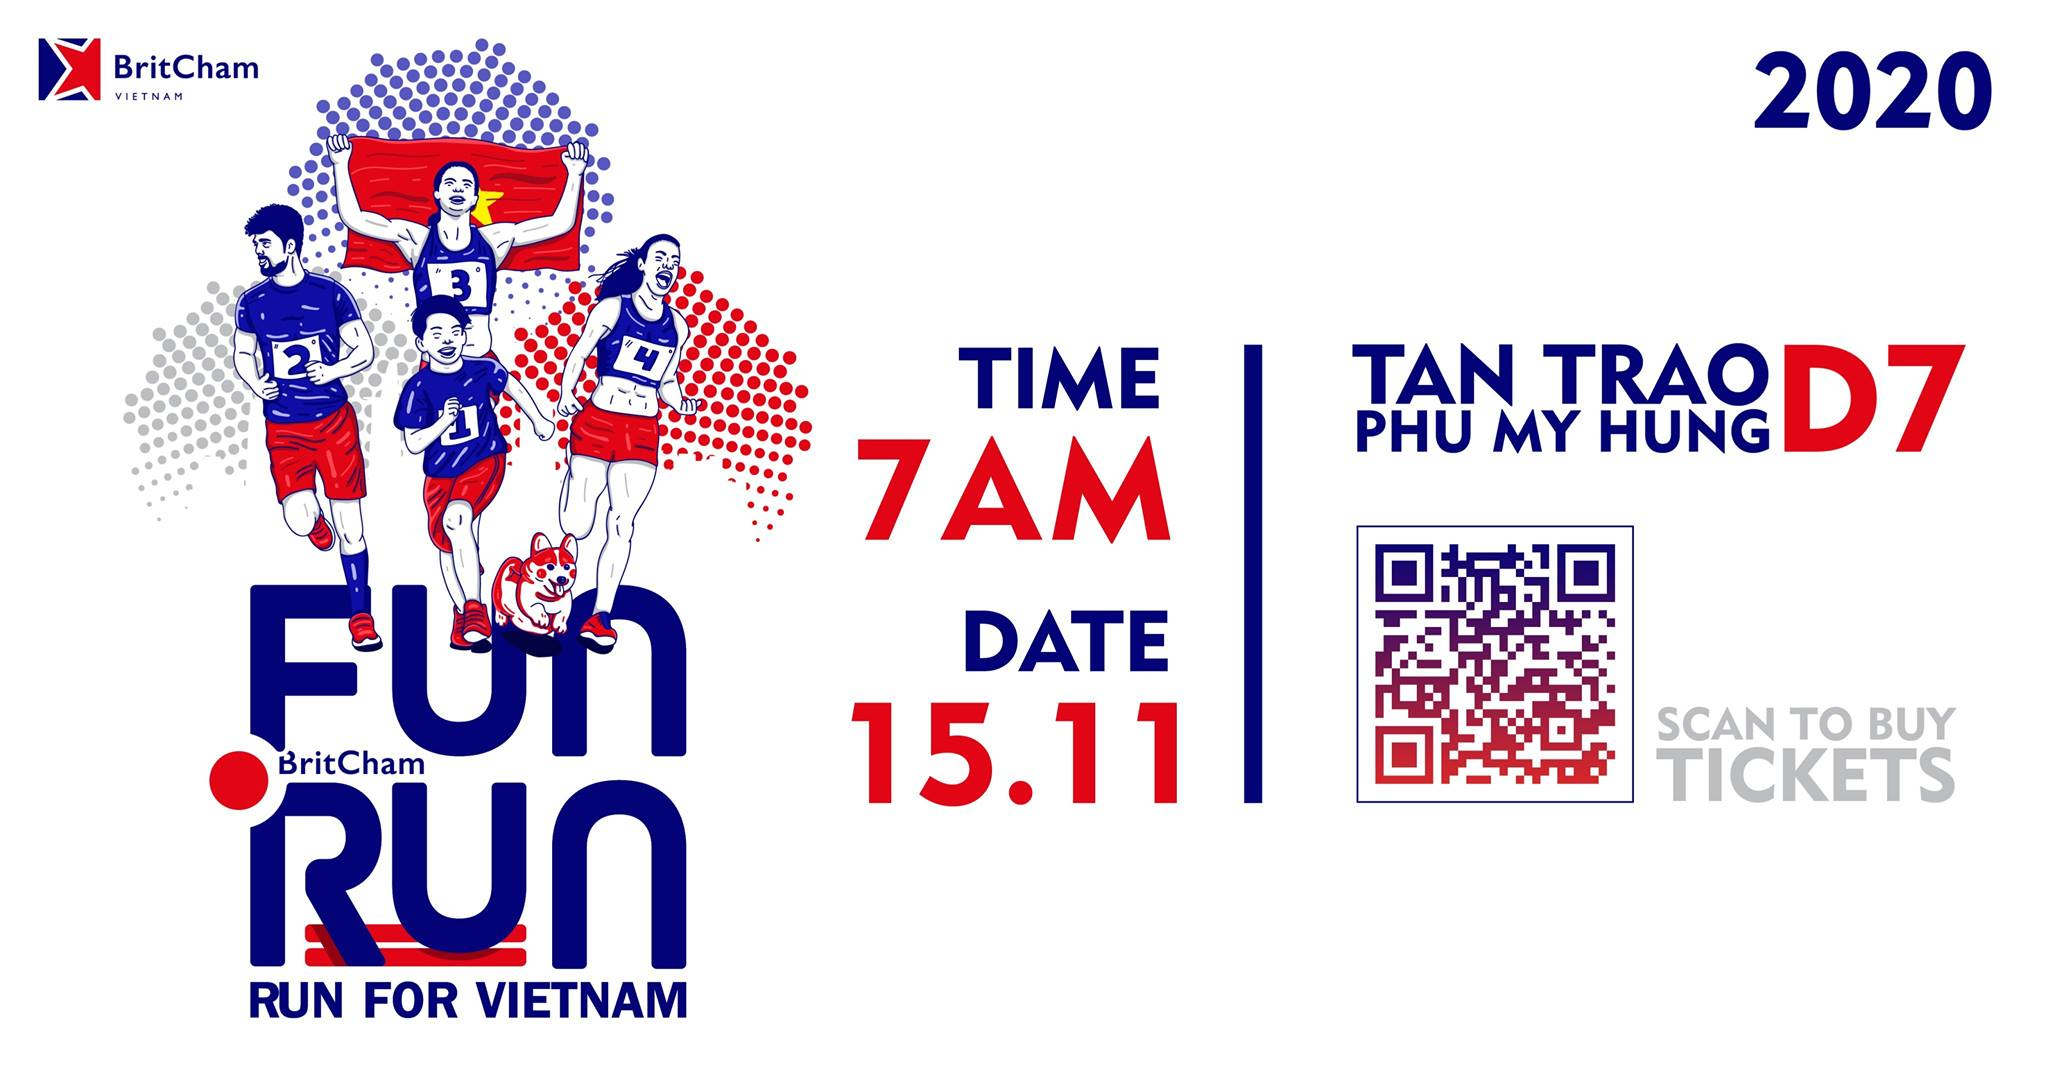 Fun Run 2020 will take place on Sunday, November 15, 2020.